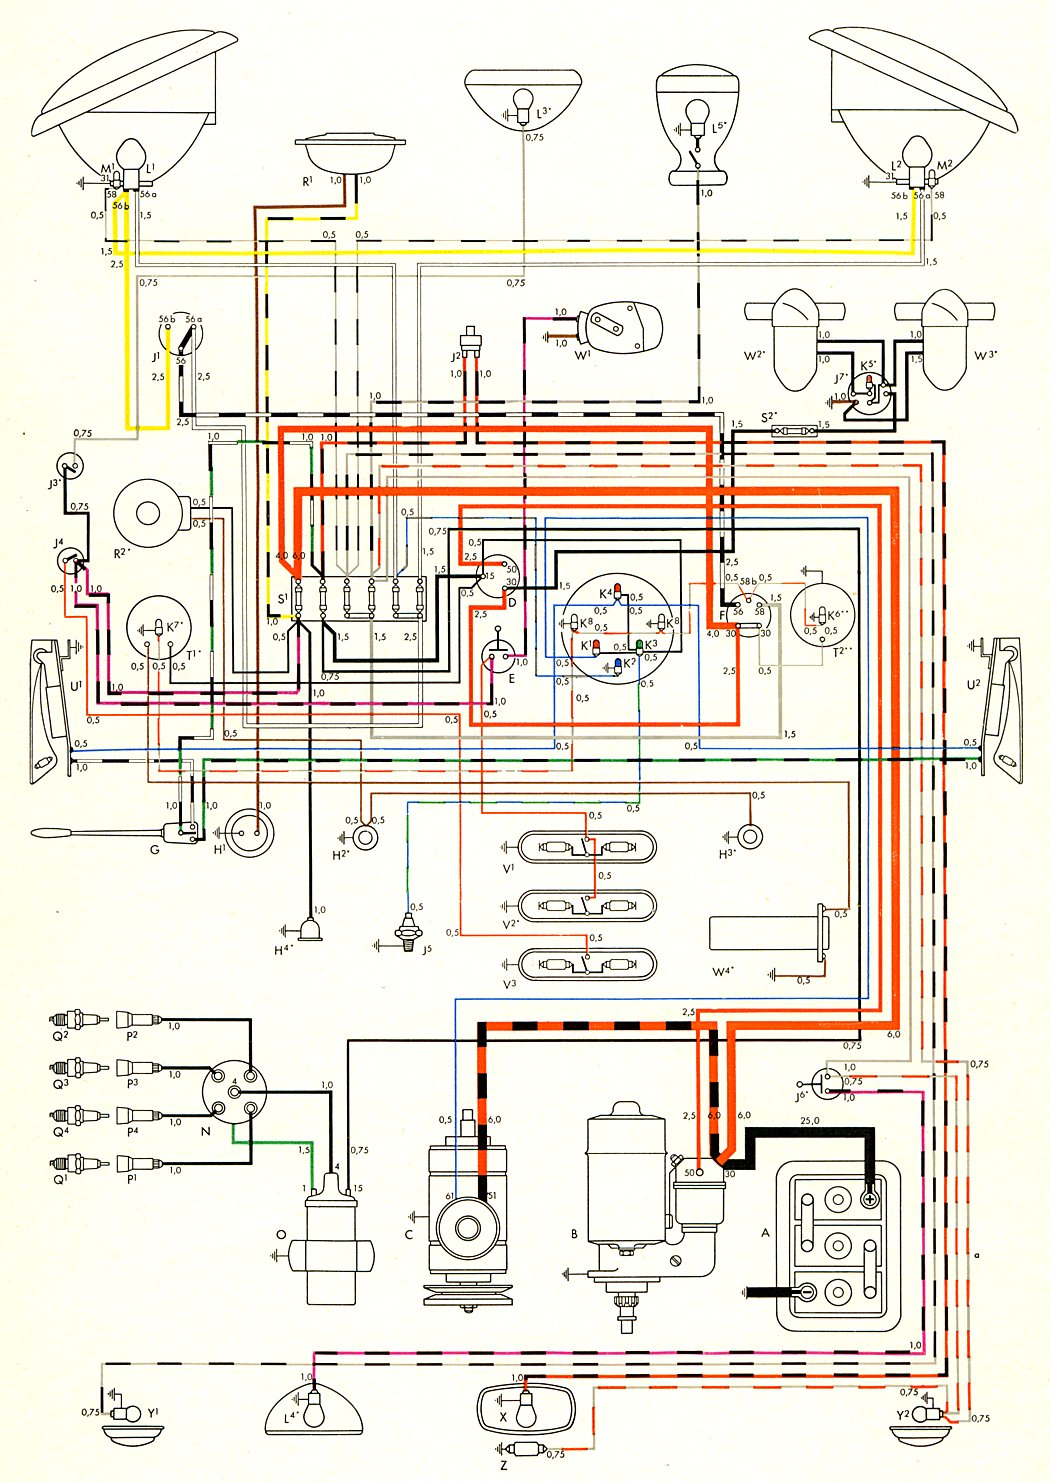 1965 vw bug wire harness with Wiringt2 on 63 Volkswagen Wiring Diagram likewise Viewtopic further Wiring also 4bteg I M Working Dune Buggy Wire Coil Gen in addition Diagrams hissind.